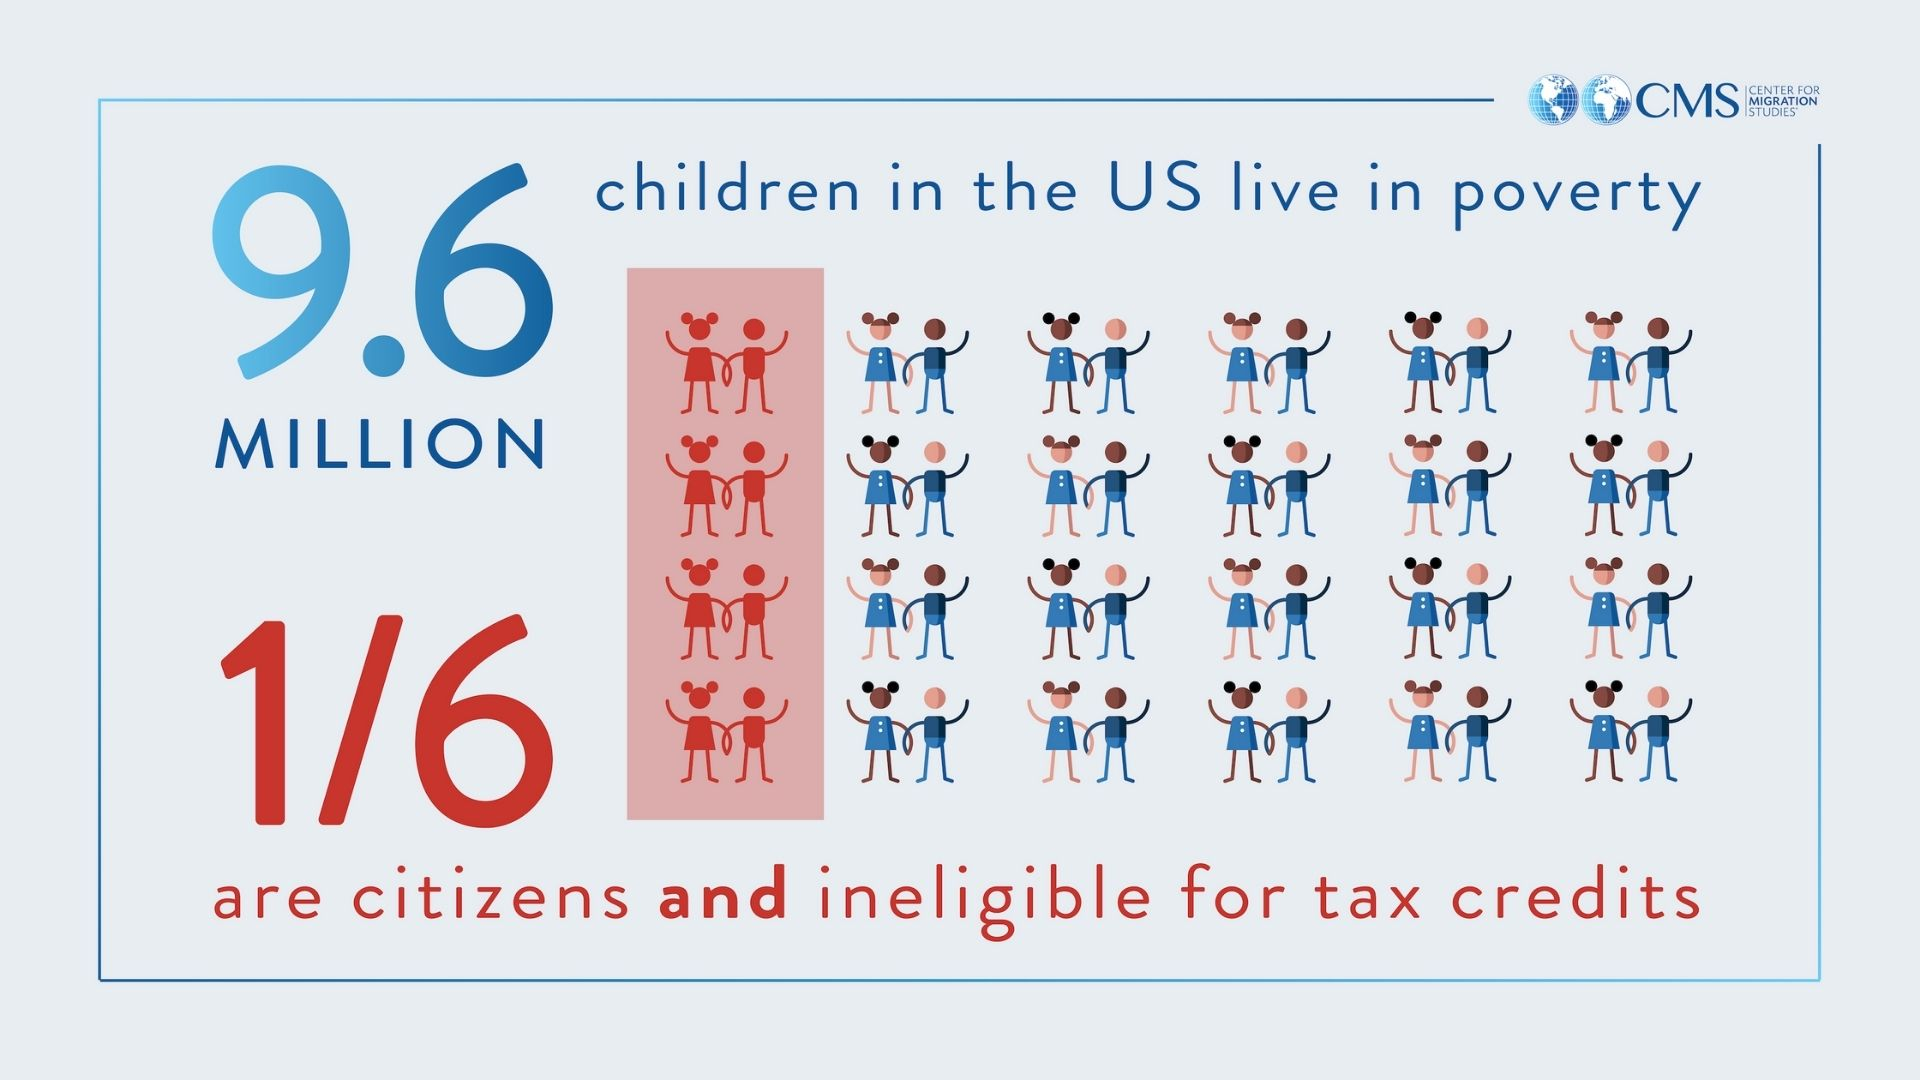 Infographic: 9.6 million children in the US live in poverty. 1/6 are US Citizens and ineligible for tax credits